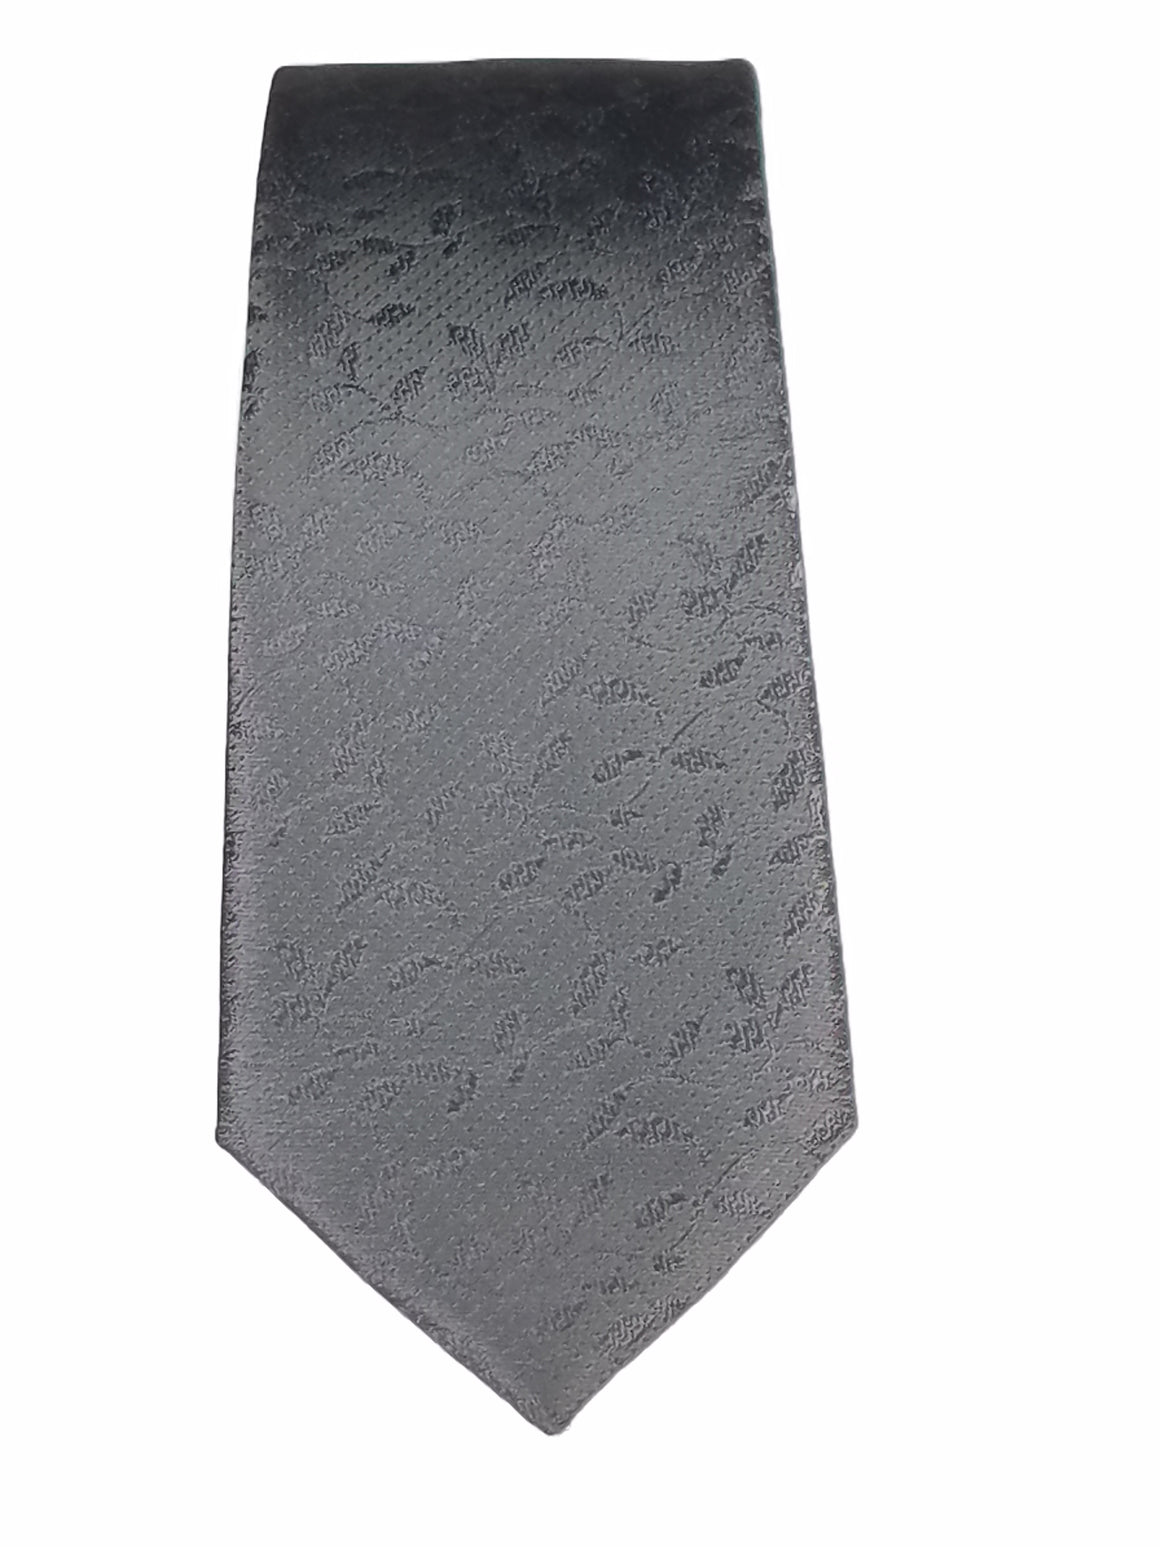 Men's Slim Tie - MS3200-BLACK LEAF PATTERN